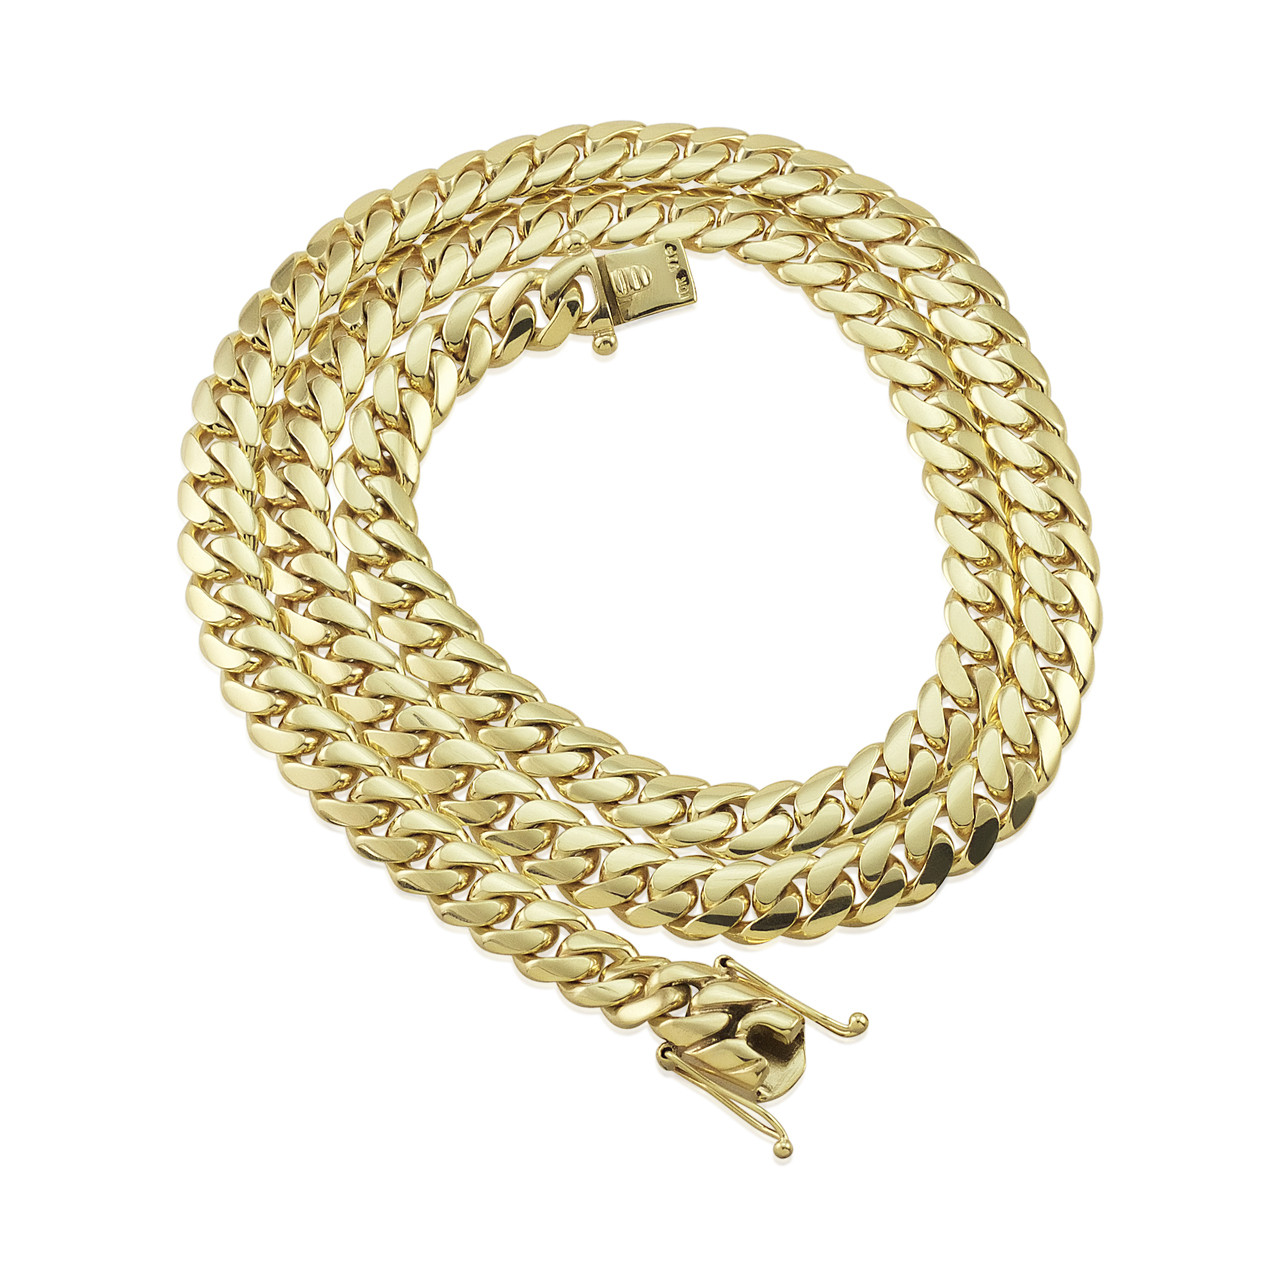 10k Gold Cuban Link Chain >> 10k Yellow Gold 16mm Miami Cuban Link Chain 31in